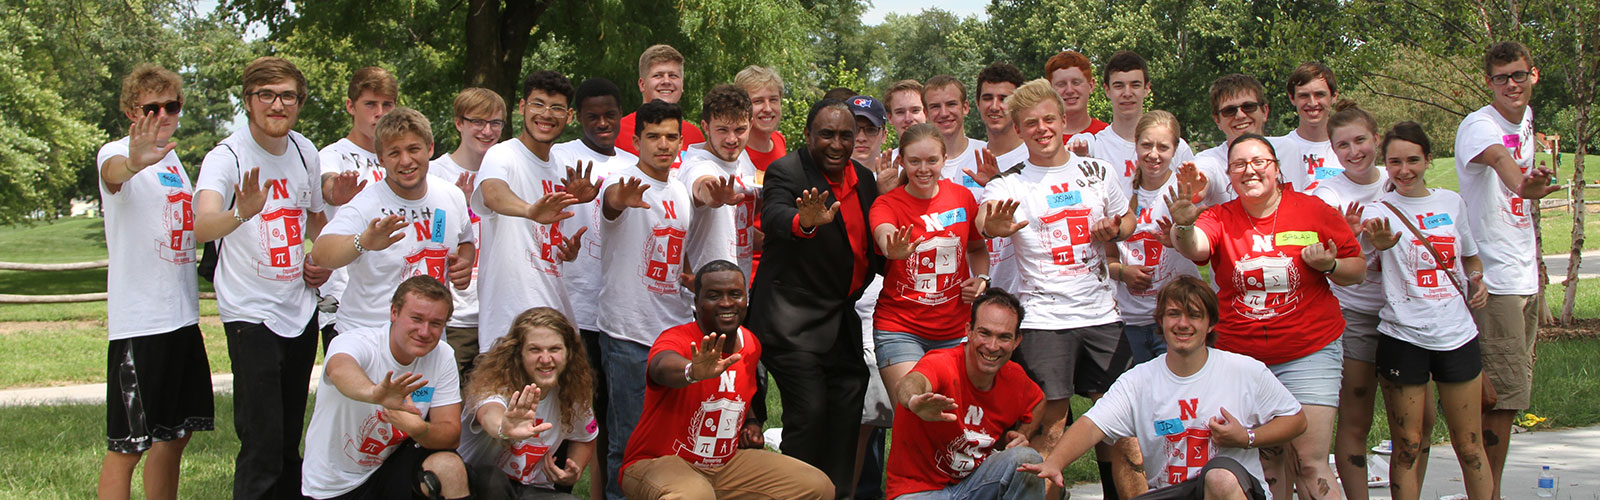 ERA 2019 Group giving a Heisman pose with 1972 Heisman award winner Johnny Rodgers.